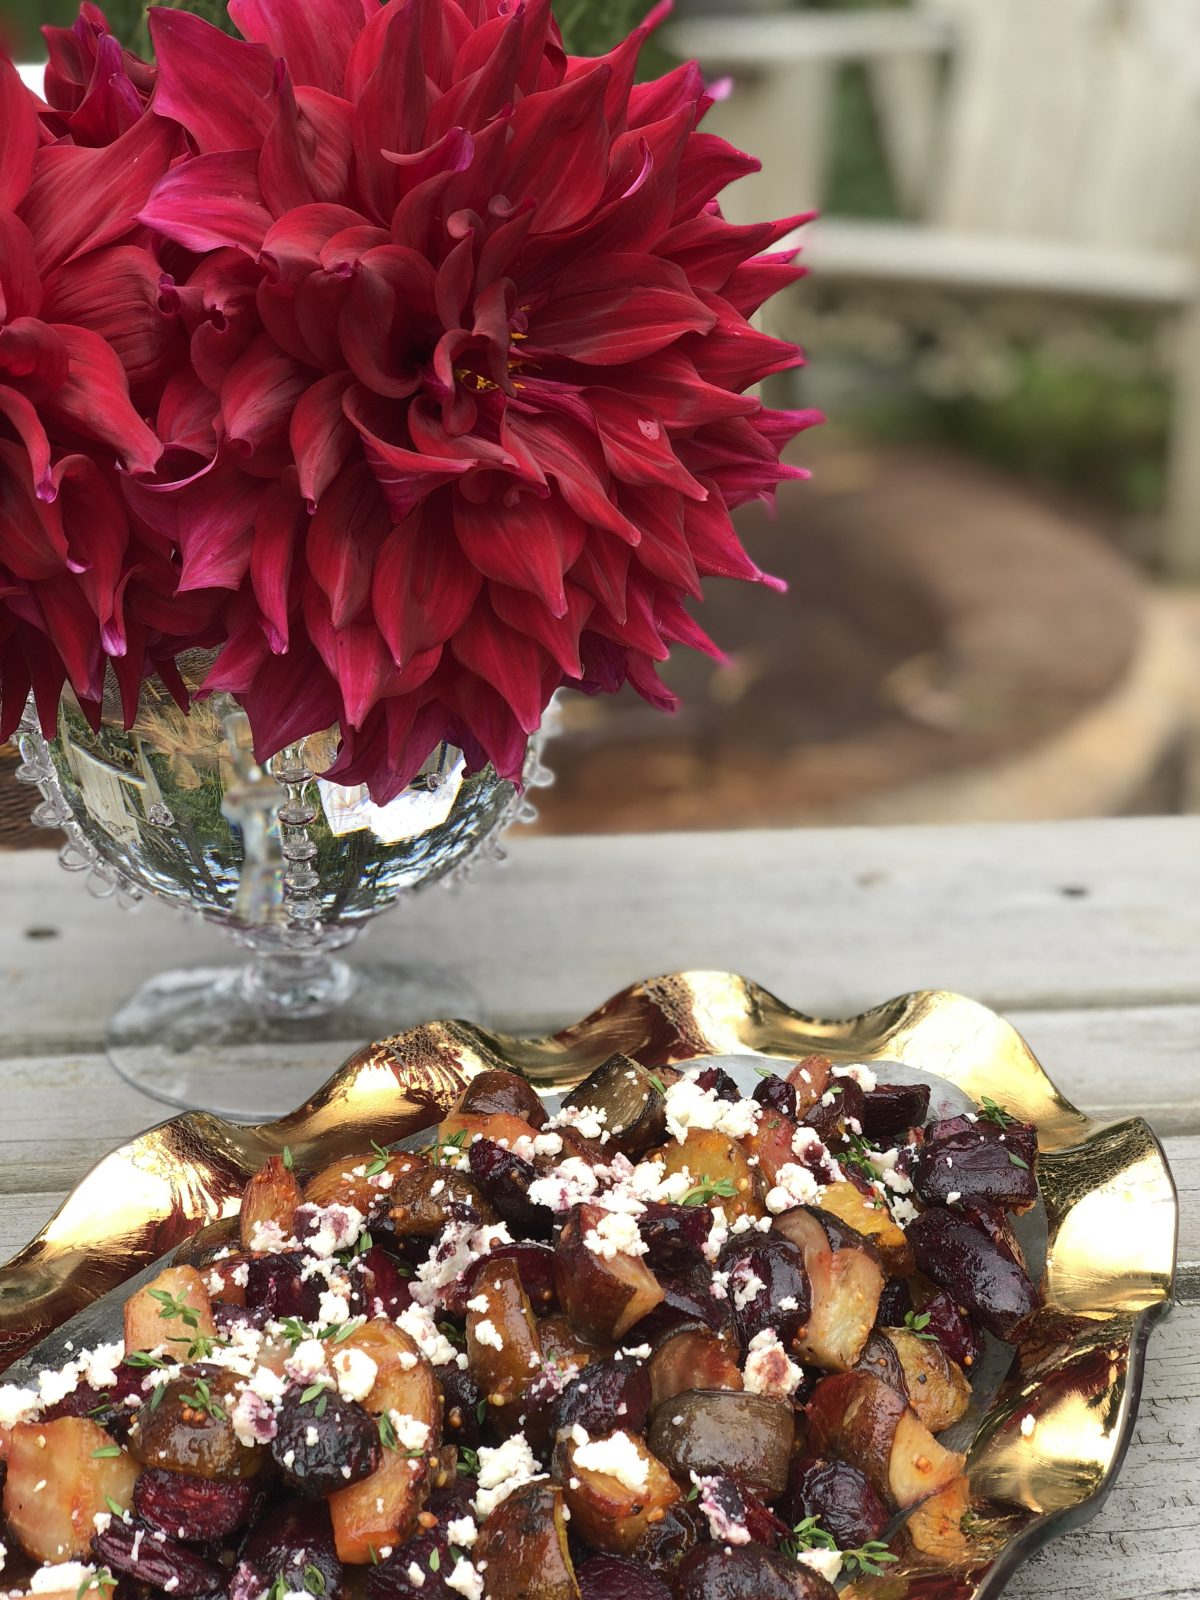 I love when the dahlias match the beets!